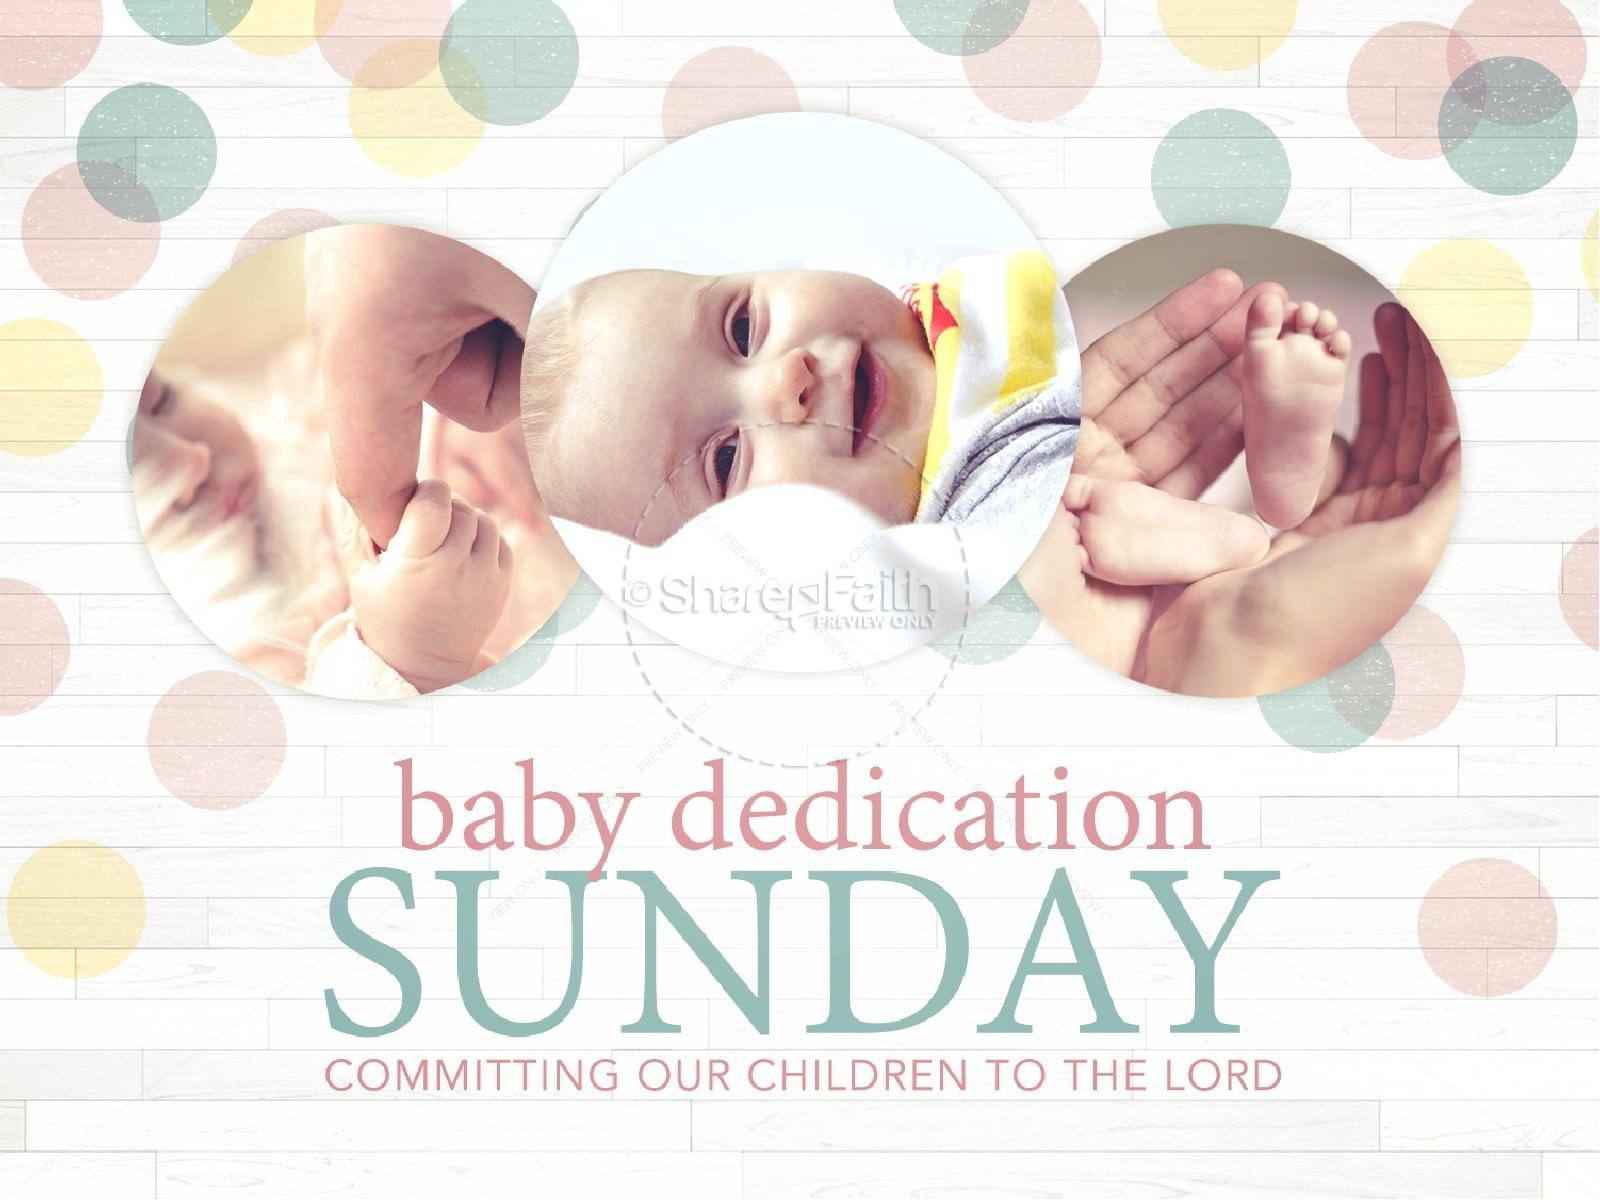 Baby dedication clipart free 8 » Clipart Portal.